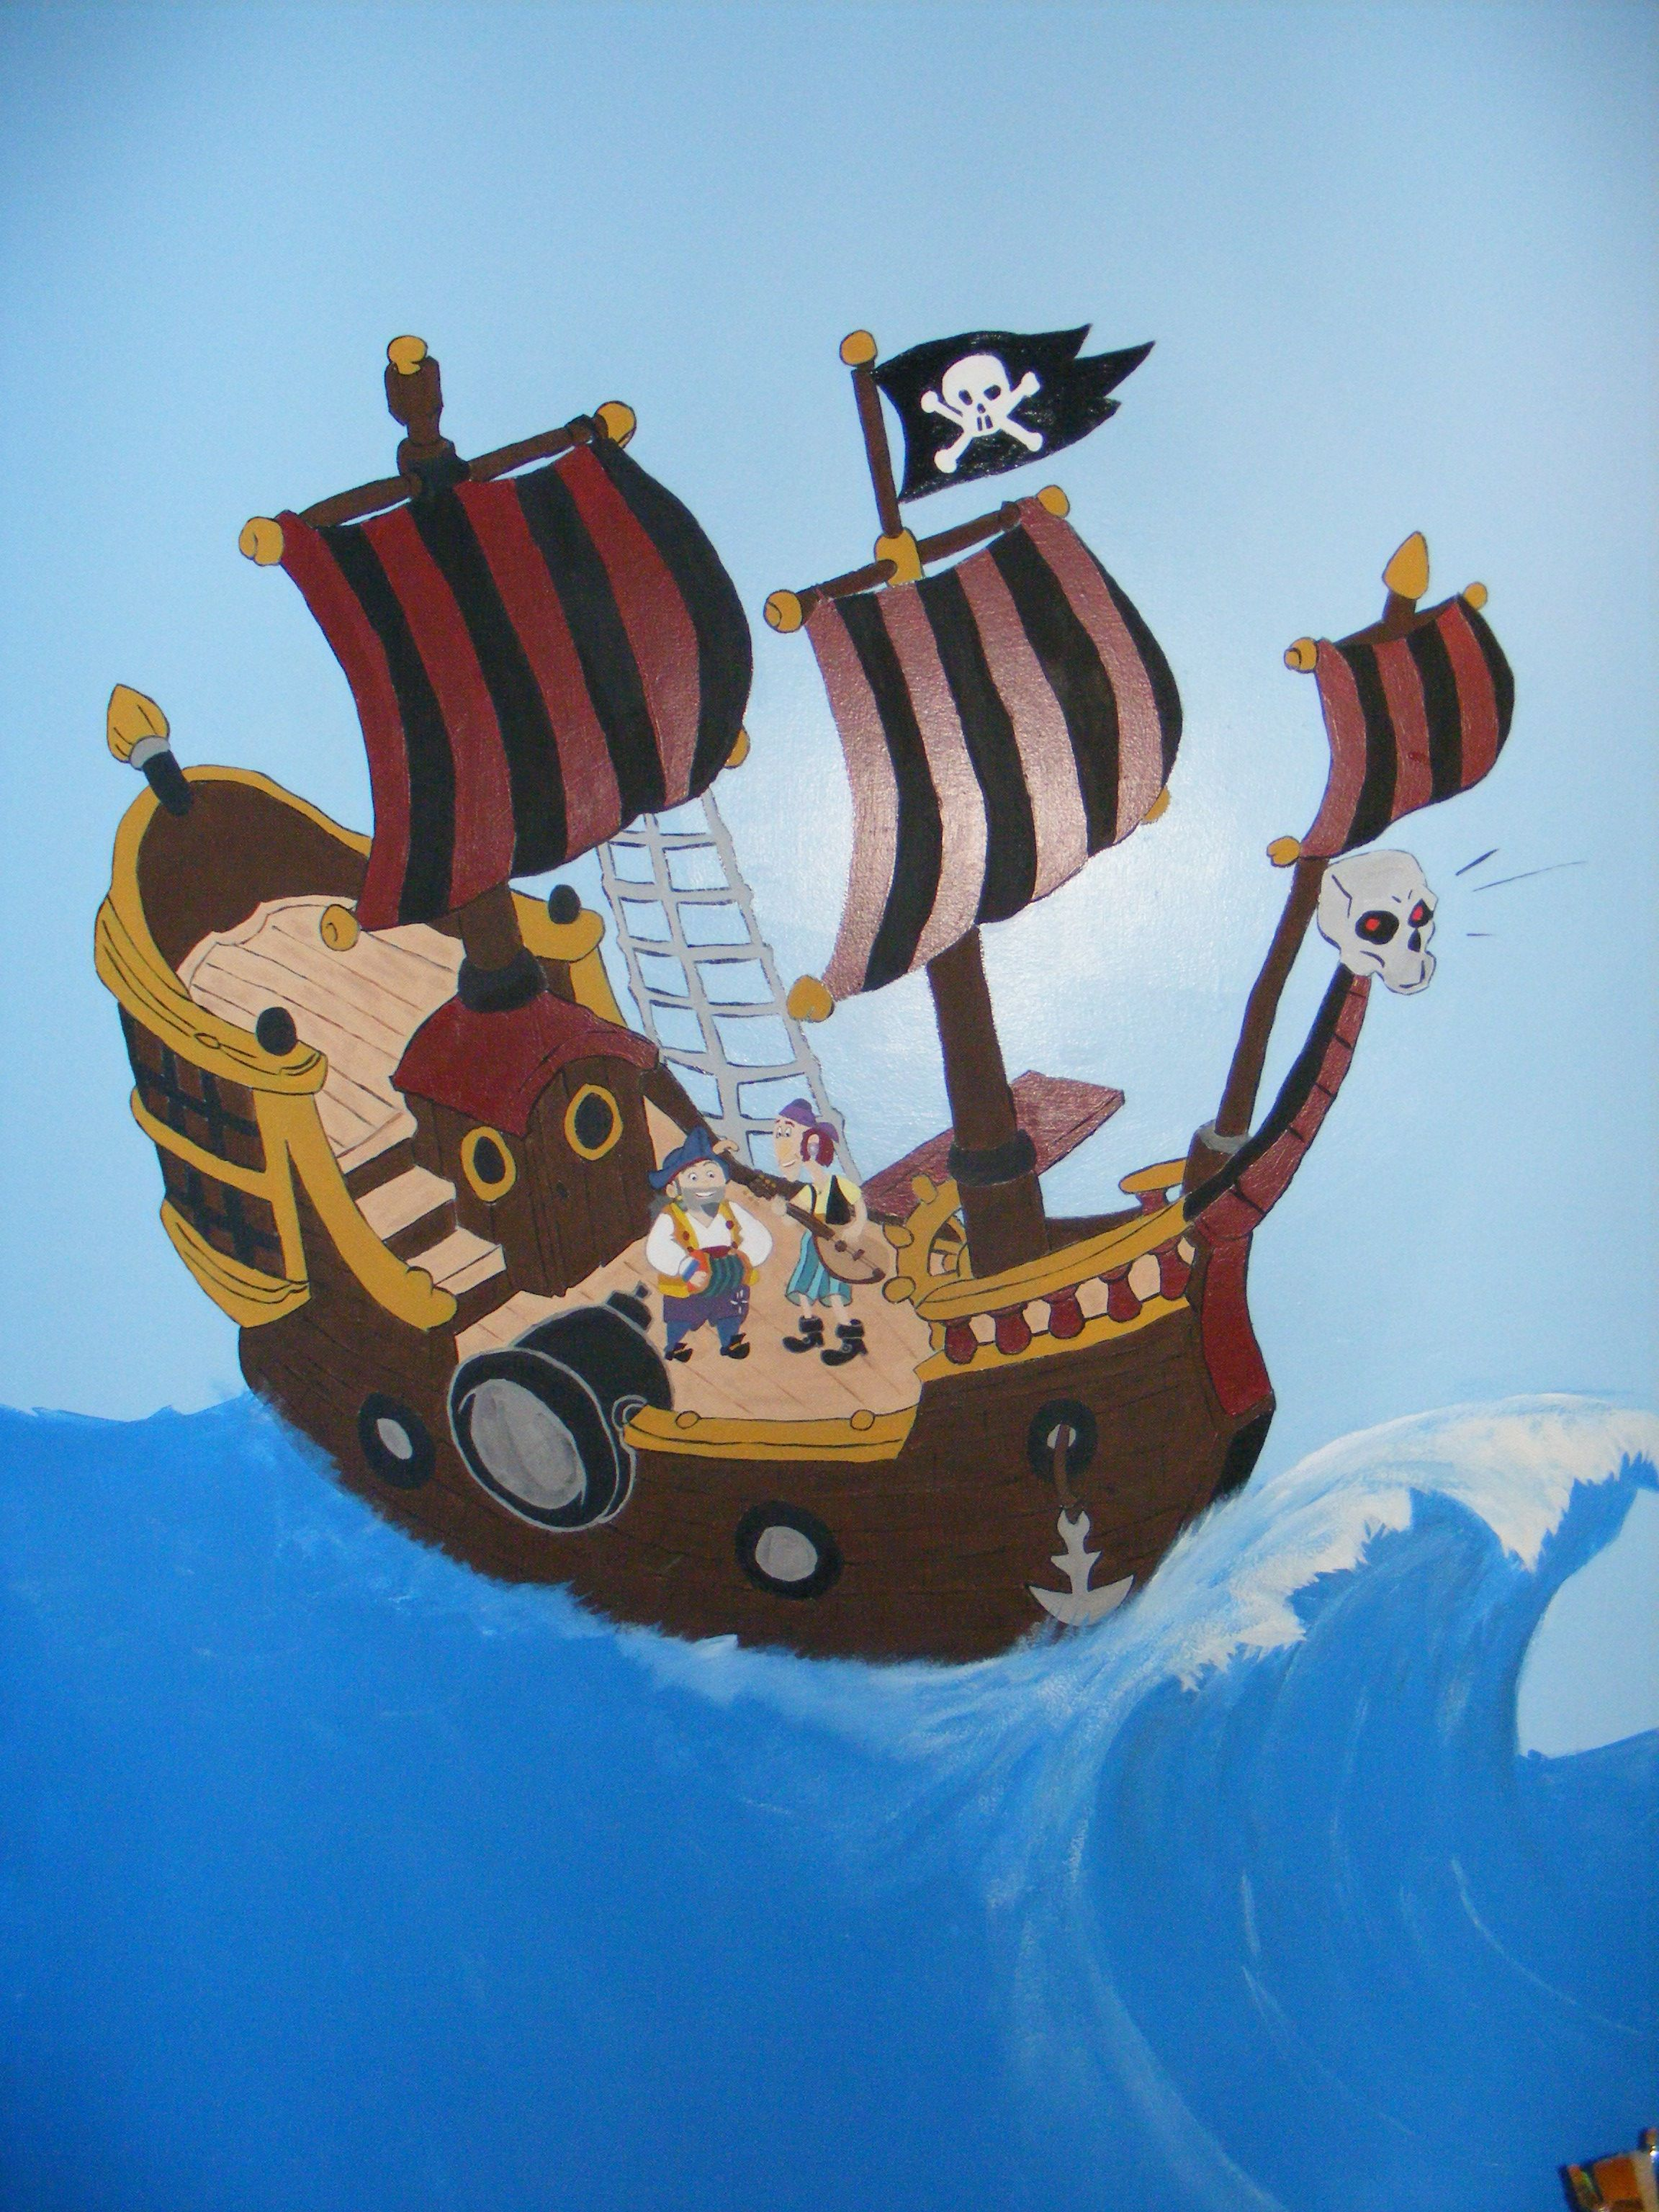 Captain Hooks Pirate Ship With Characters, Sharky & Bones On